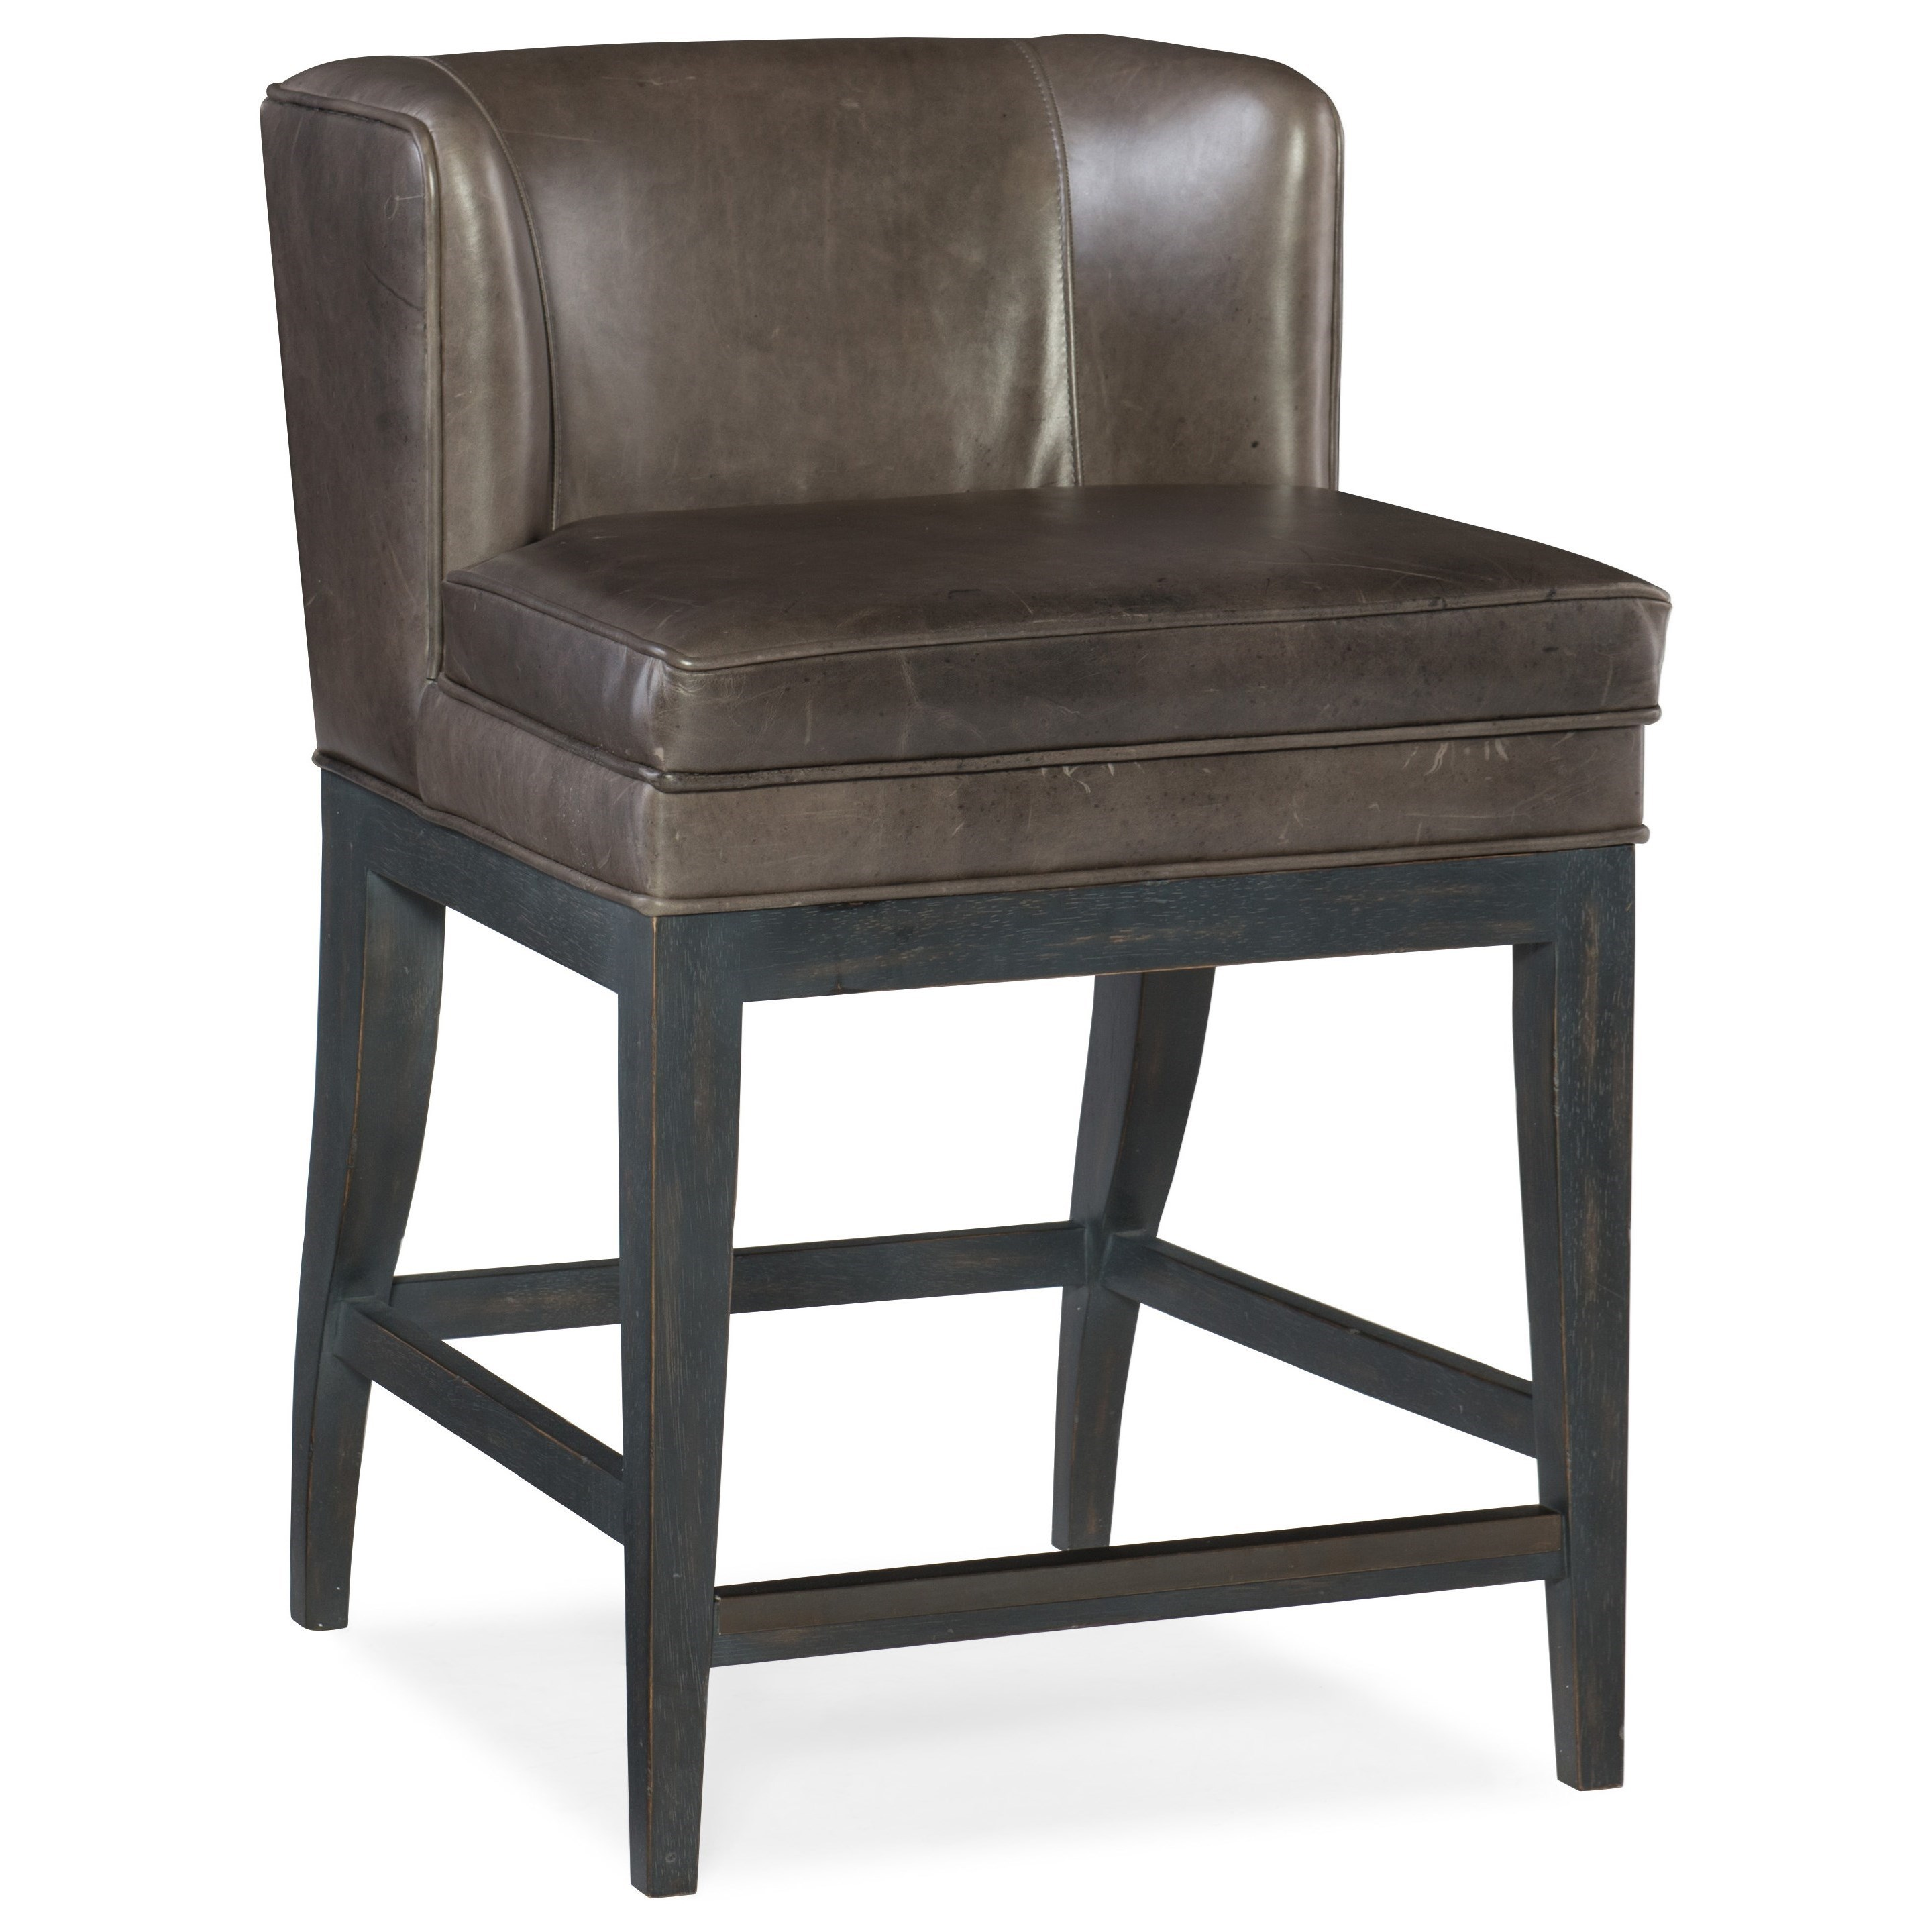 Stools Dark Jada Contemporary Counter Stool by Hooker Furniture at Powell's Furniture and Mattress